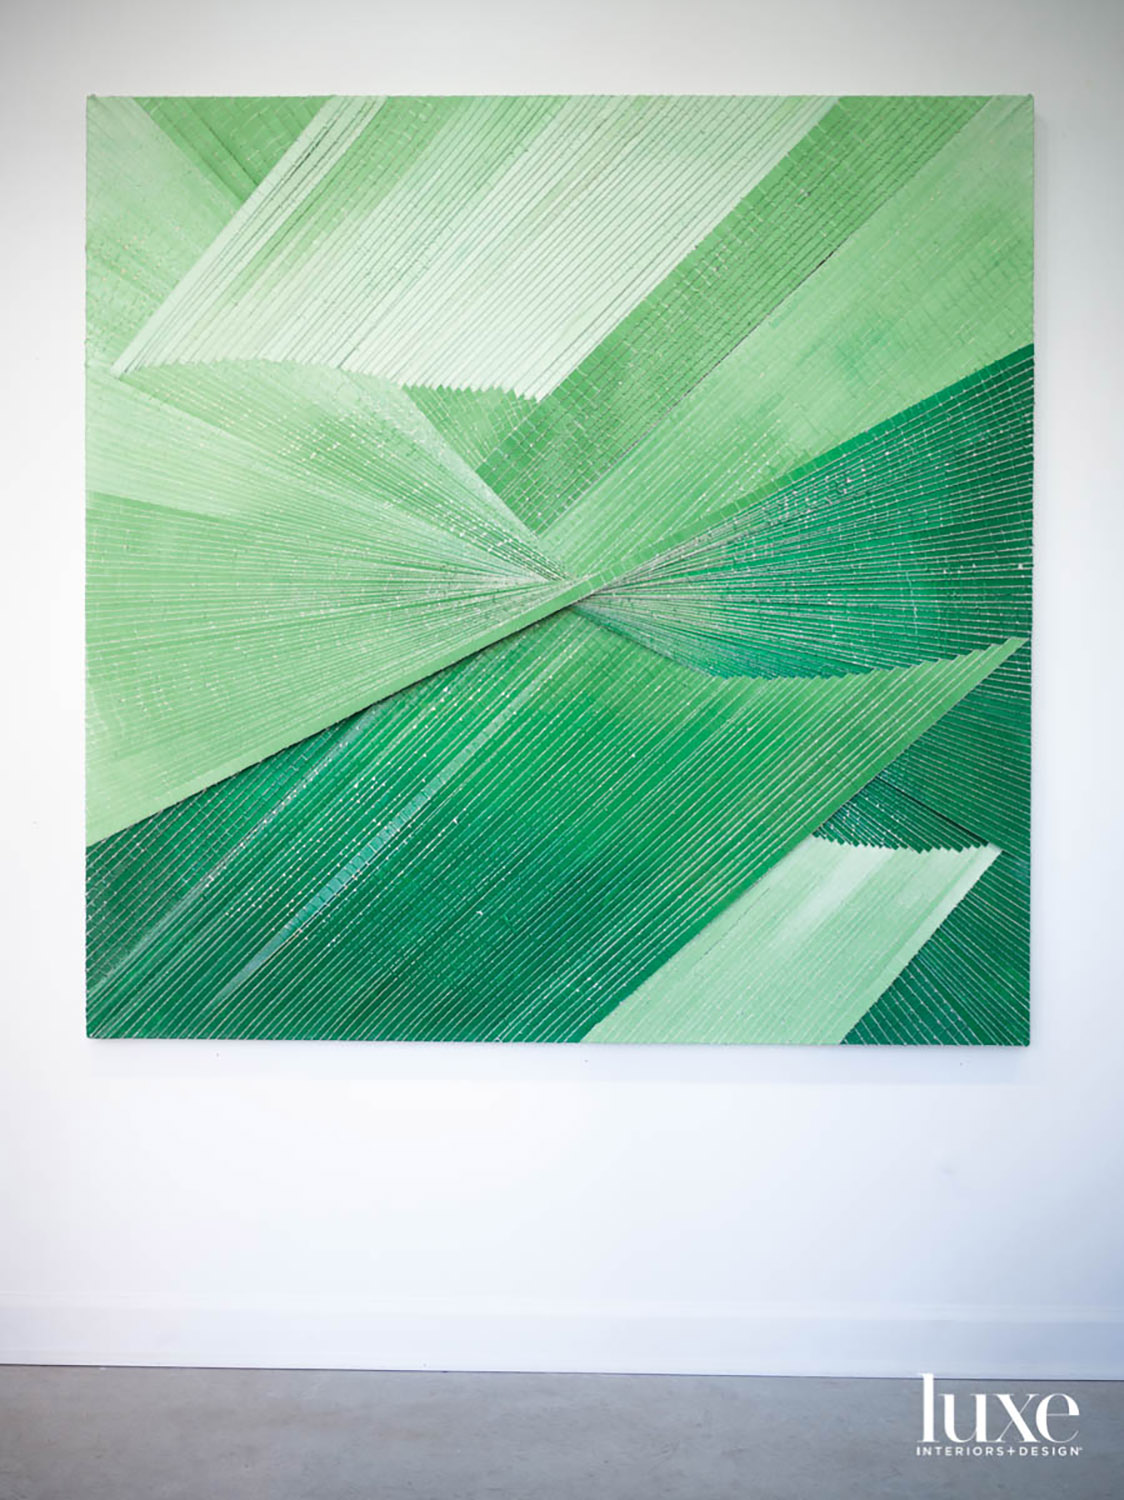 A piece of art in shades of green.